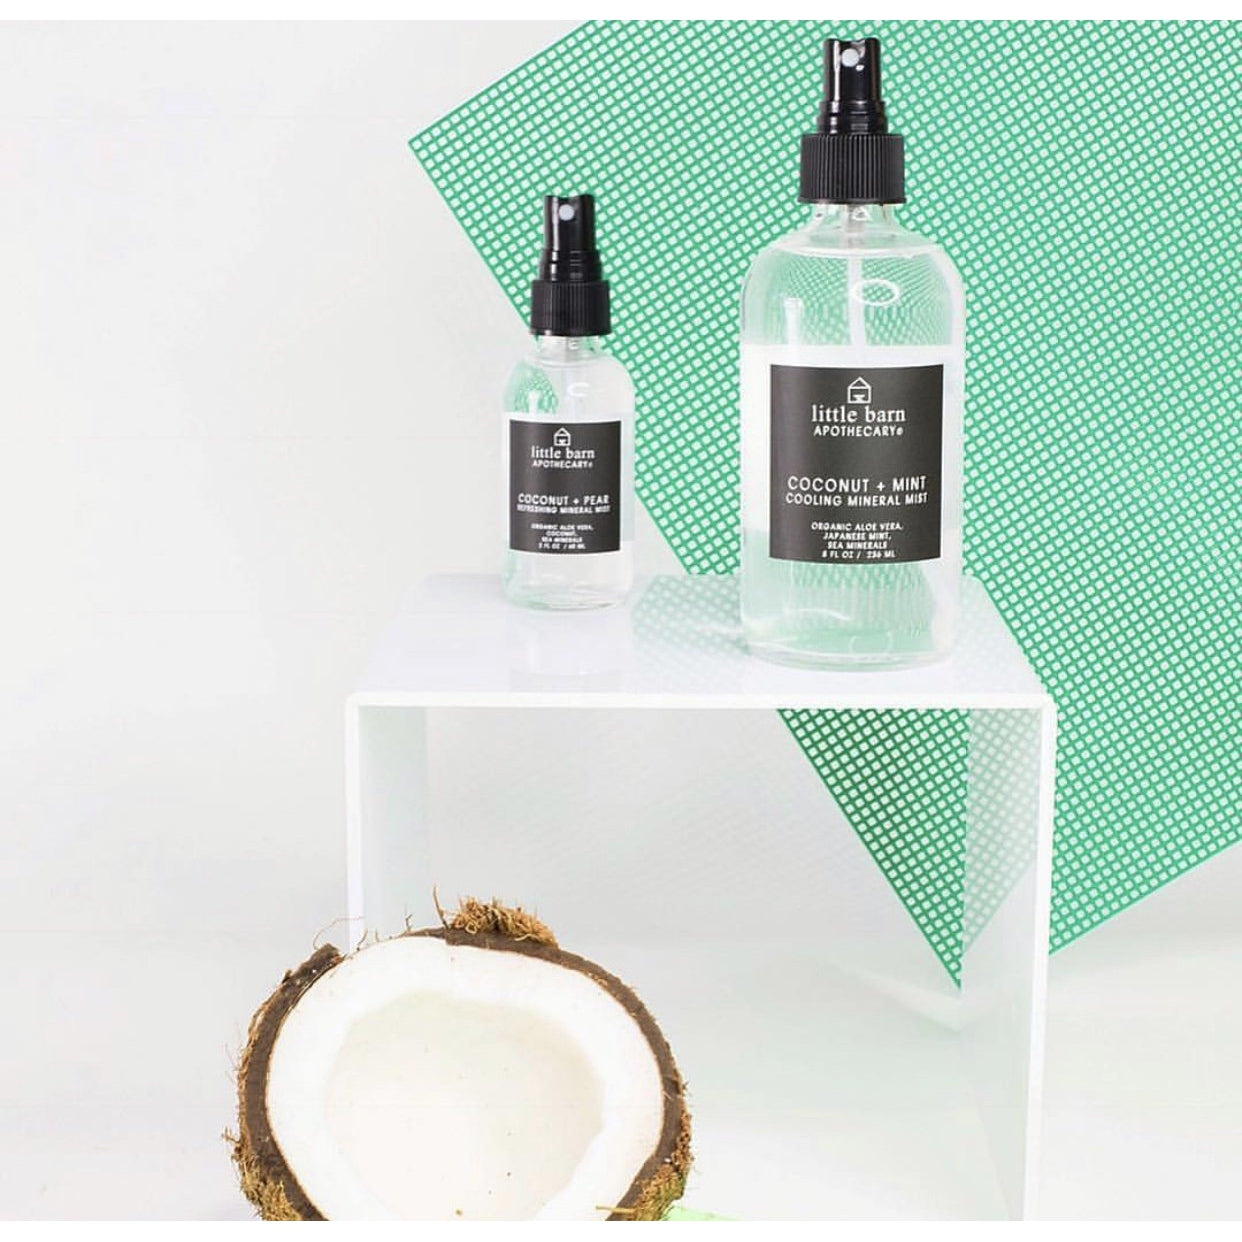 Coconut + Mint Mist - FrankShopWP